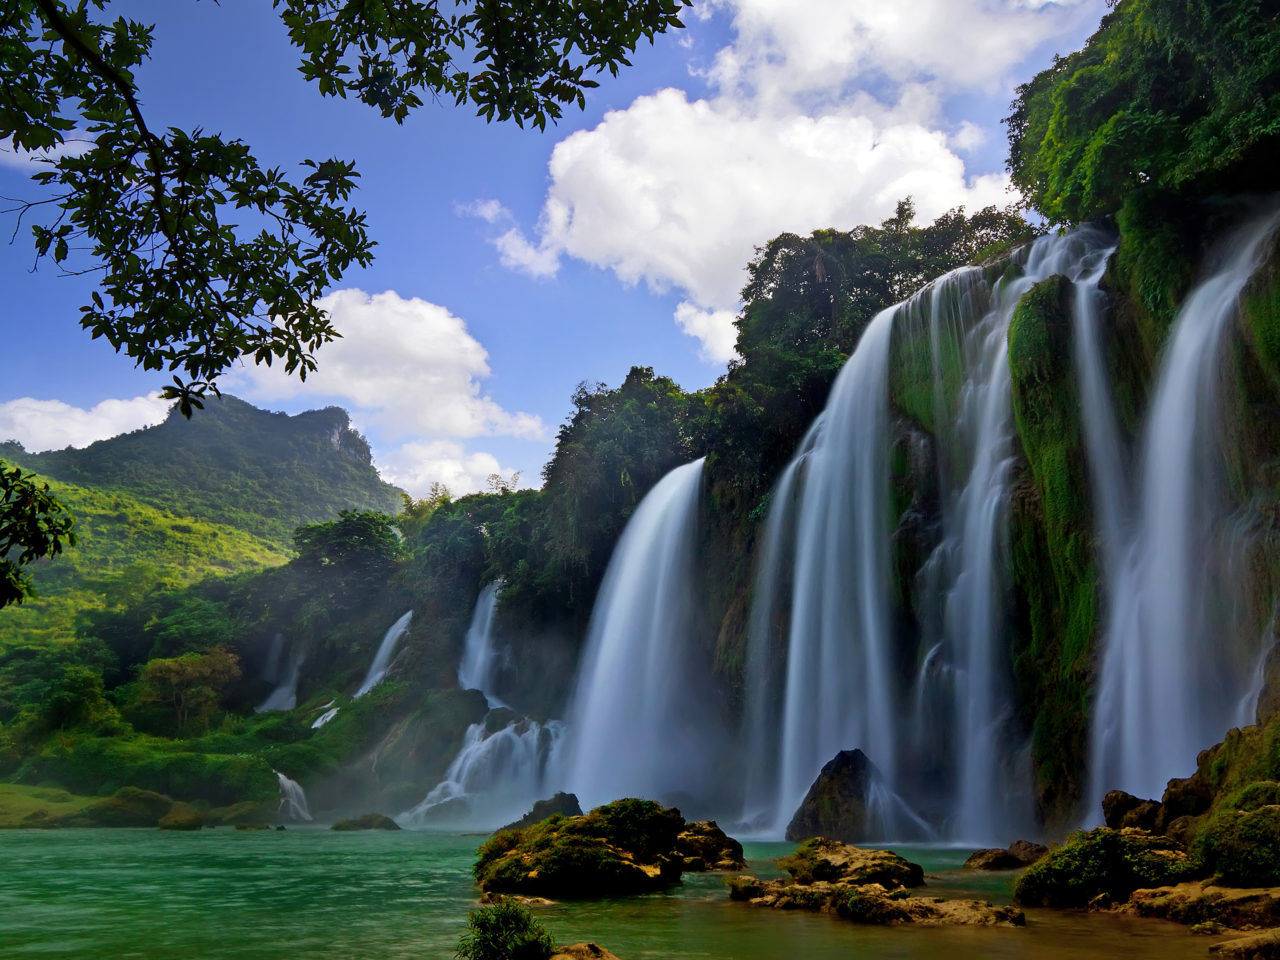 New Hd Wallpapers For Pc Free Download Ban Gioc Detian Falls Cao Bang Province China Hd Wallpaper